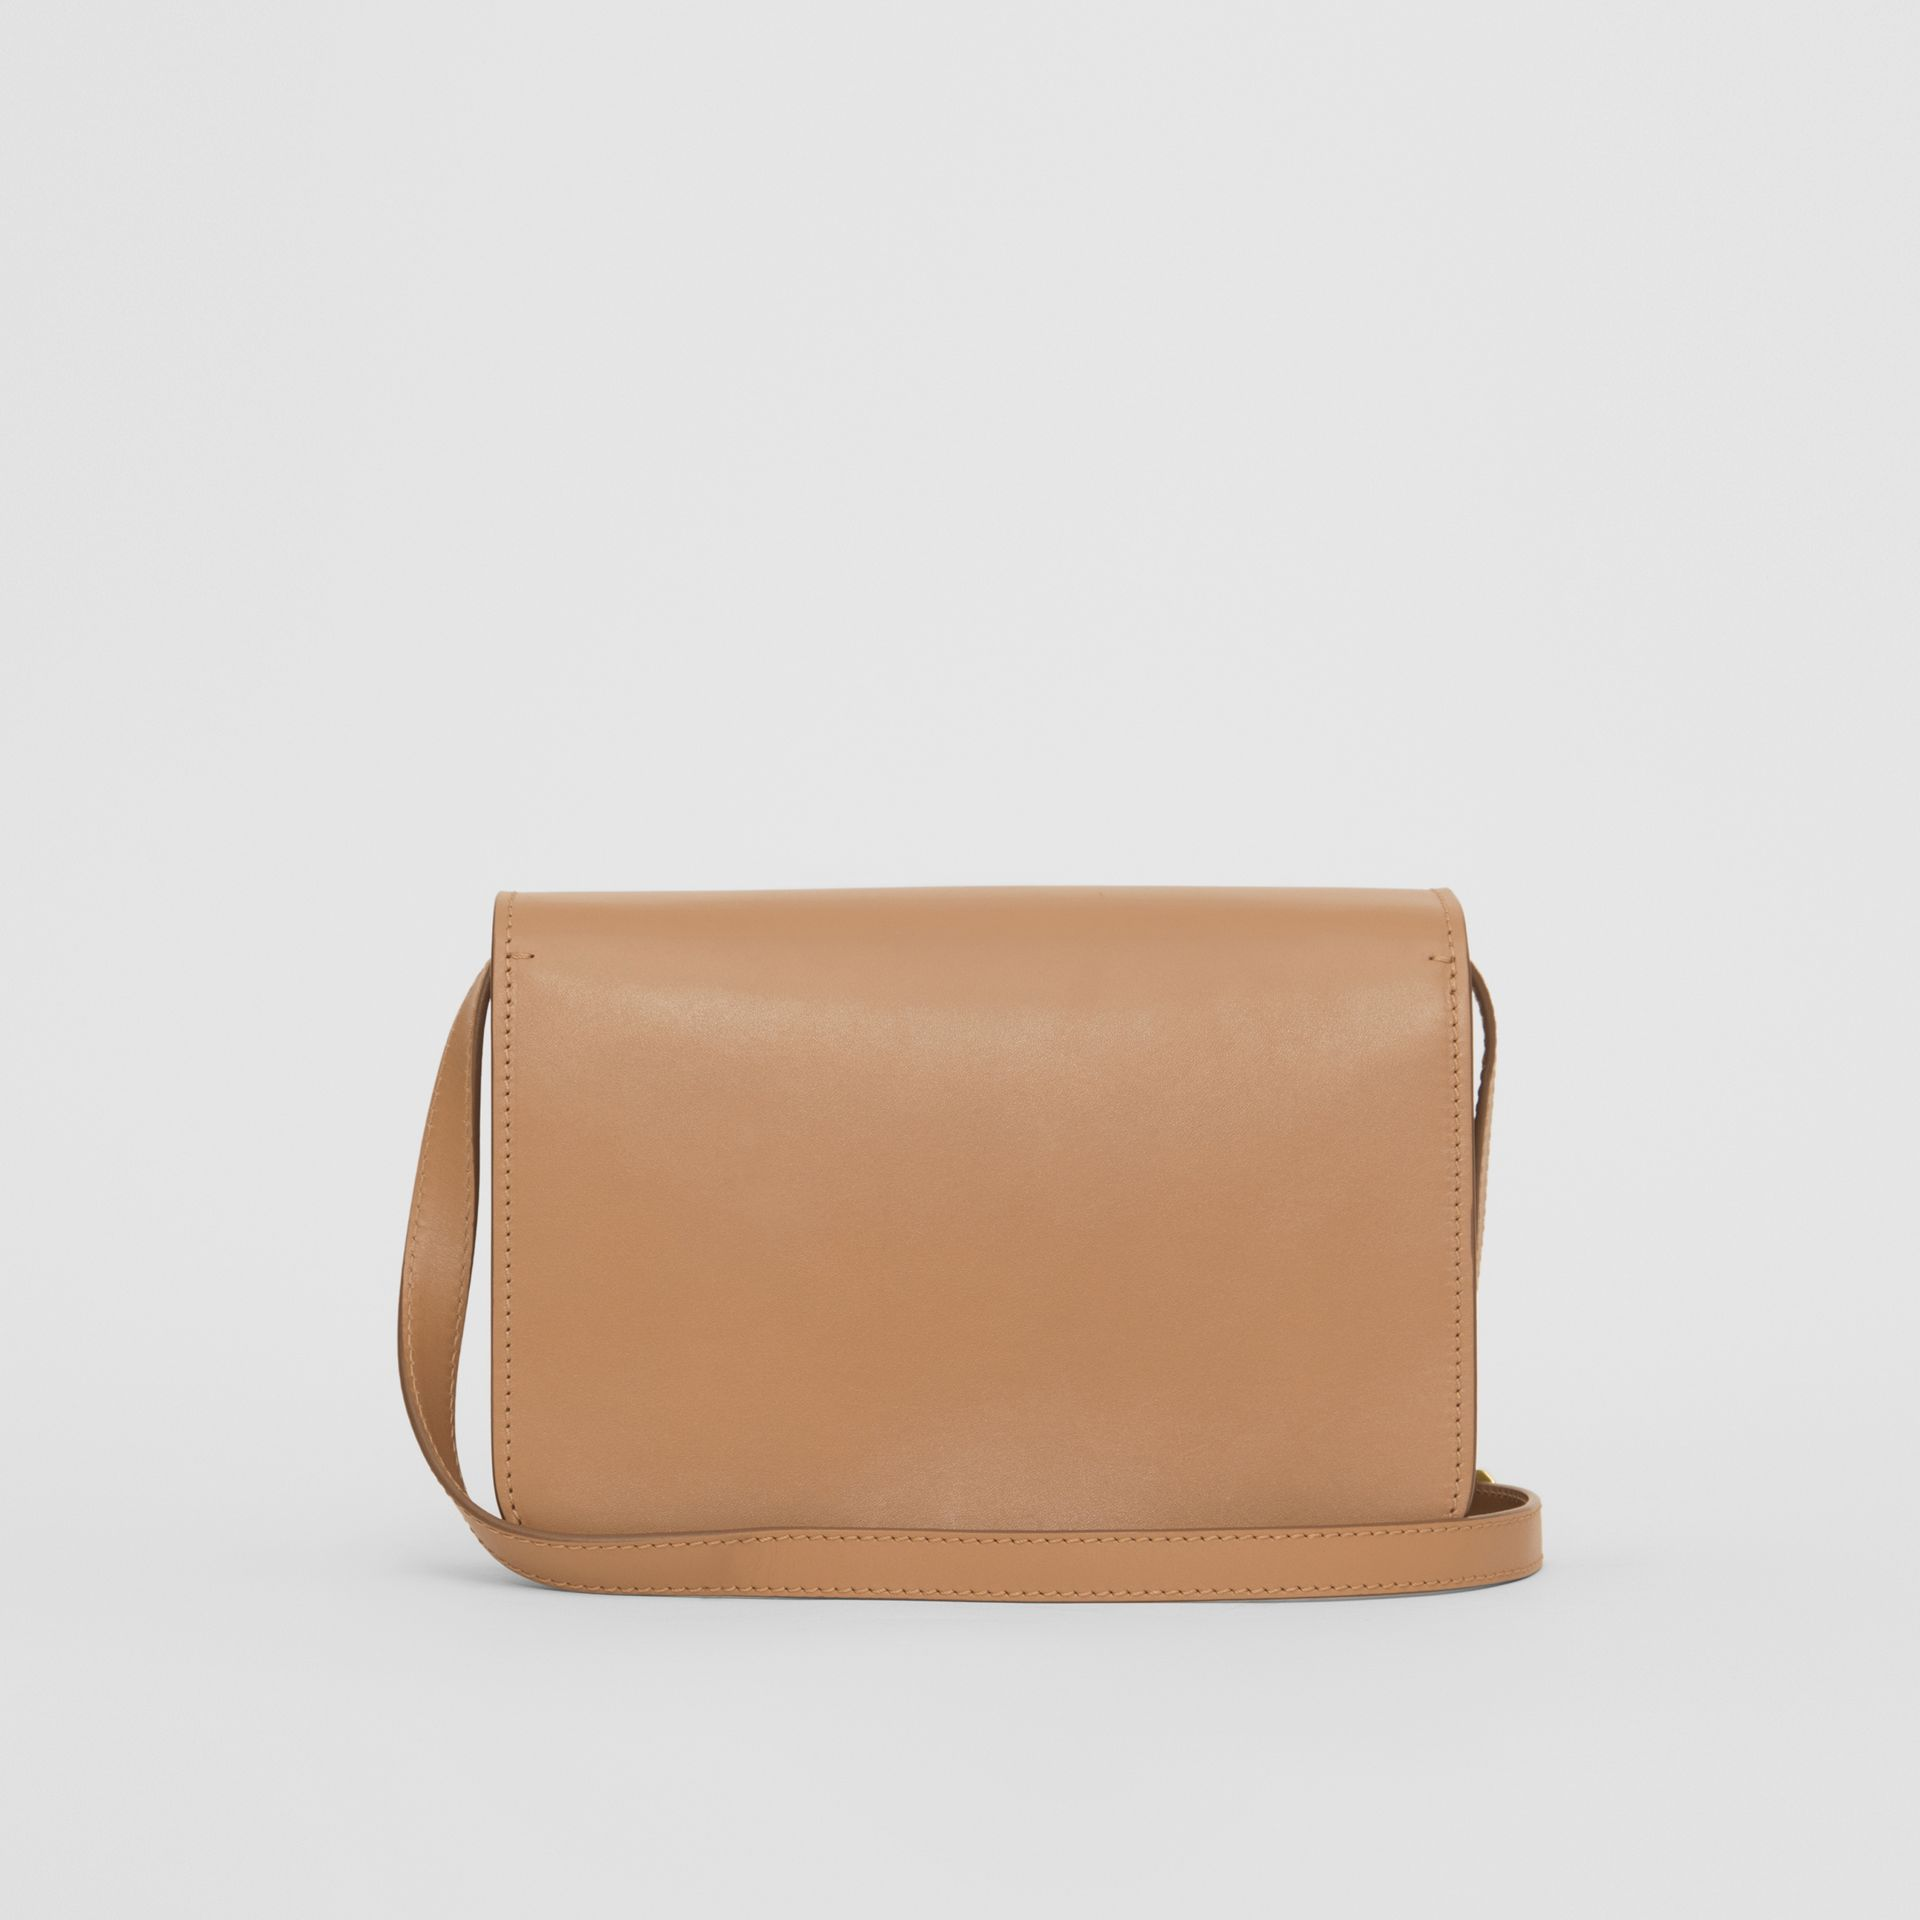 Small Leather TB Bag in Light Camel - Women | Burberry - gallery image 5